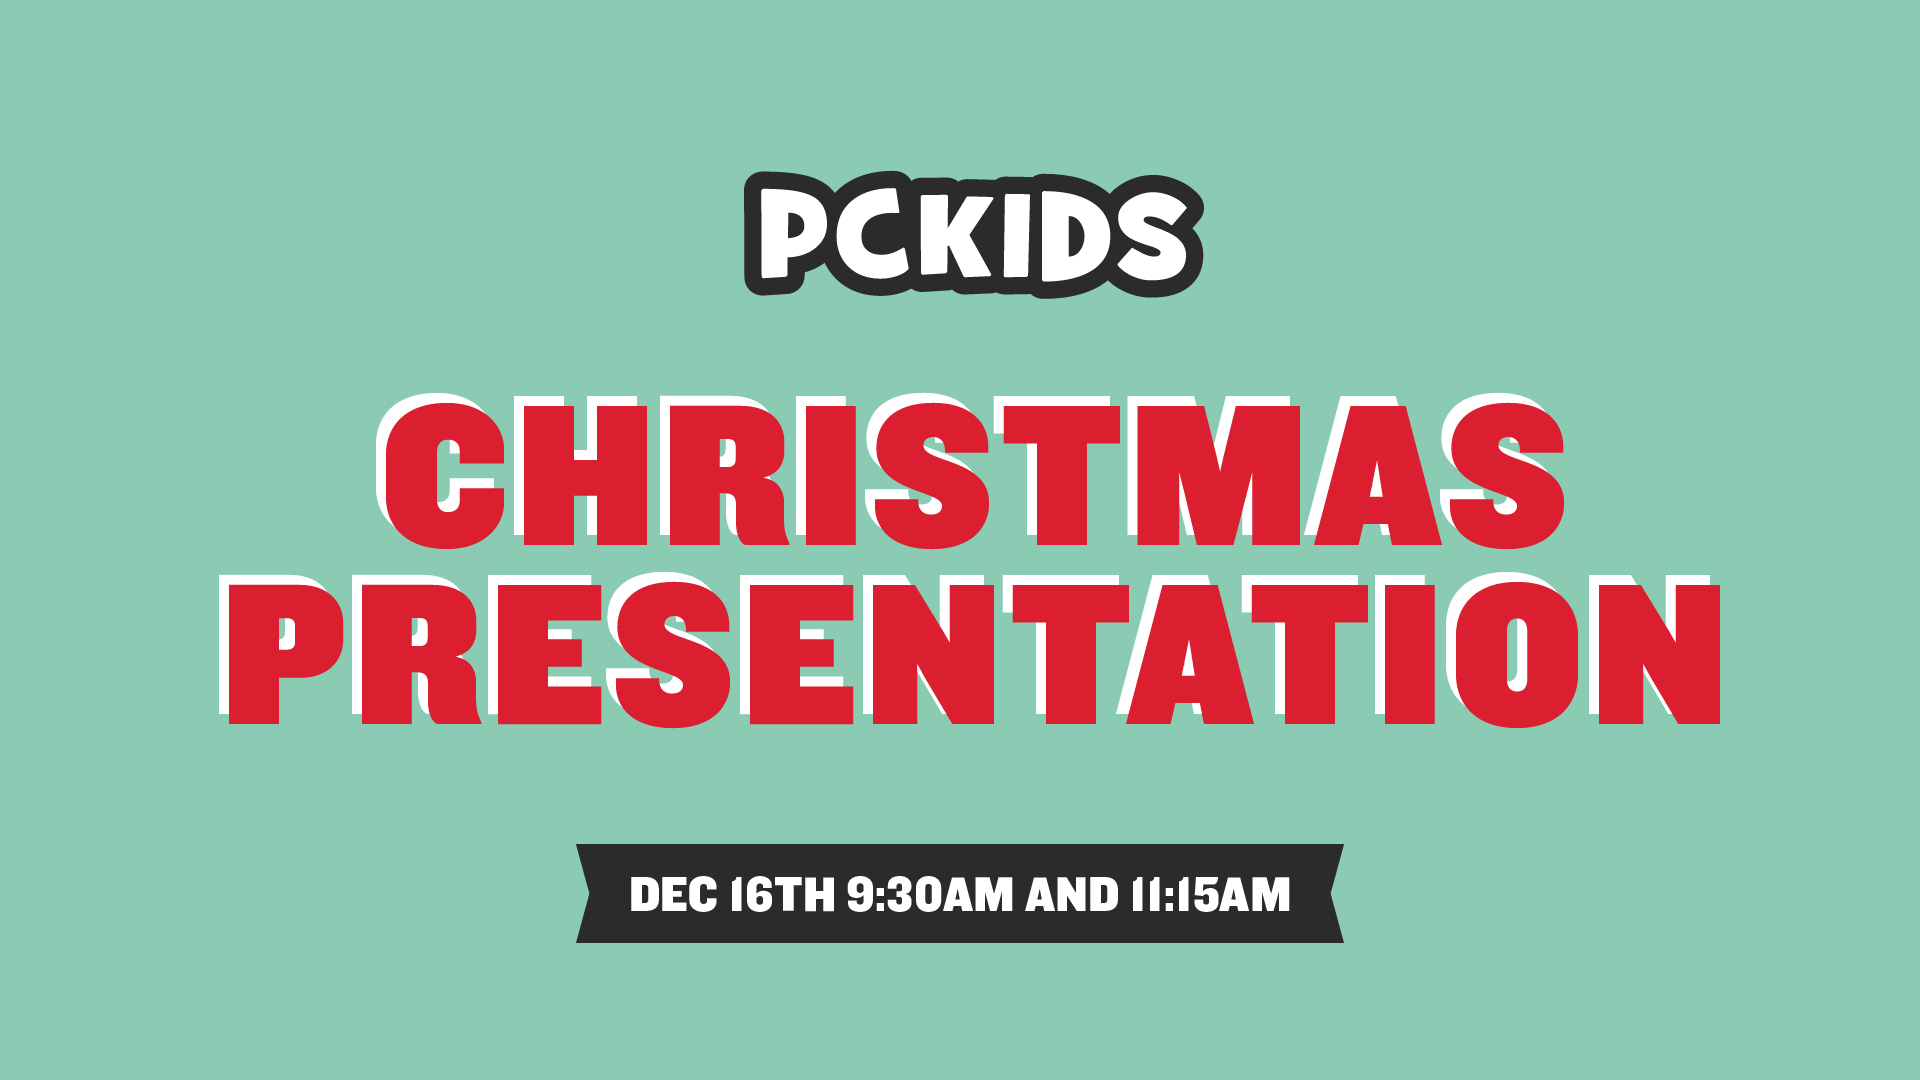 PC Kids Christmas Presentation.jpg